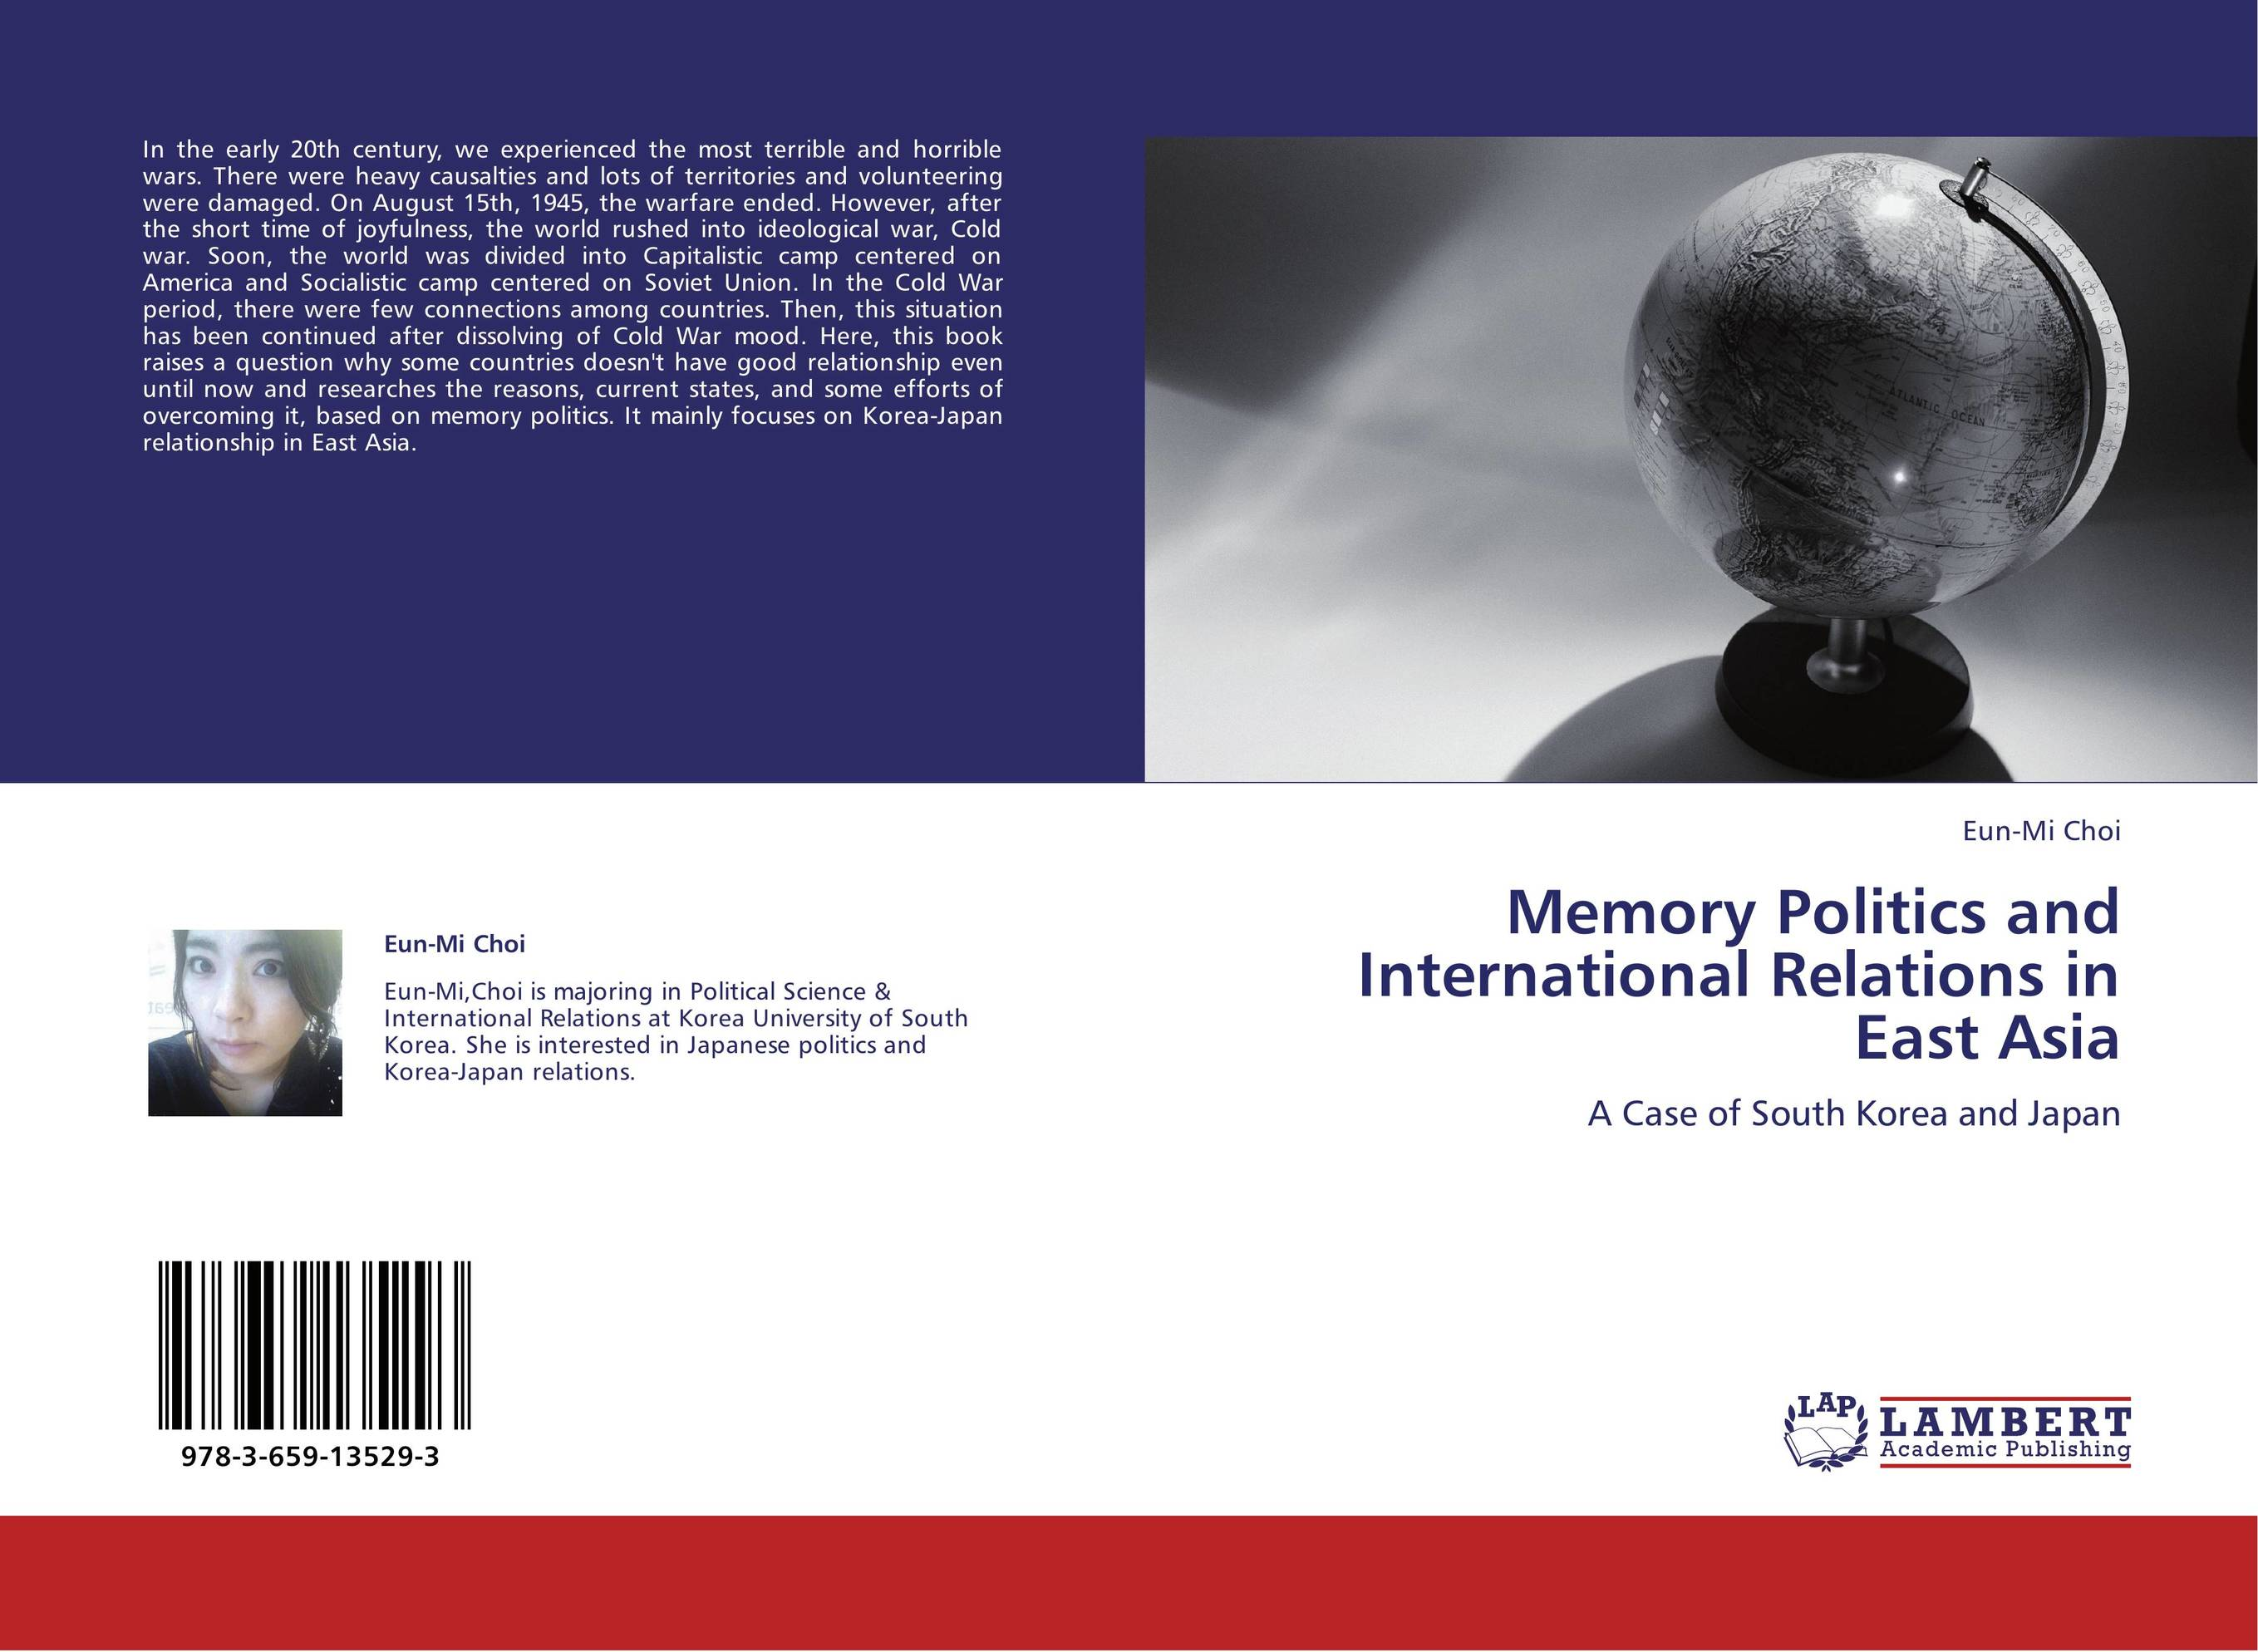 international relations in an age of Featured comment | dr champa patel the uk needs to speak with one voice to prevent mass atrocities 28 february the government must use a cross-departmental approach, where differing imperatives are aligned, to ensure effective action in situations like eastern ghouta.